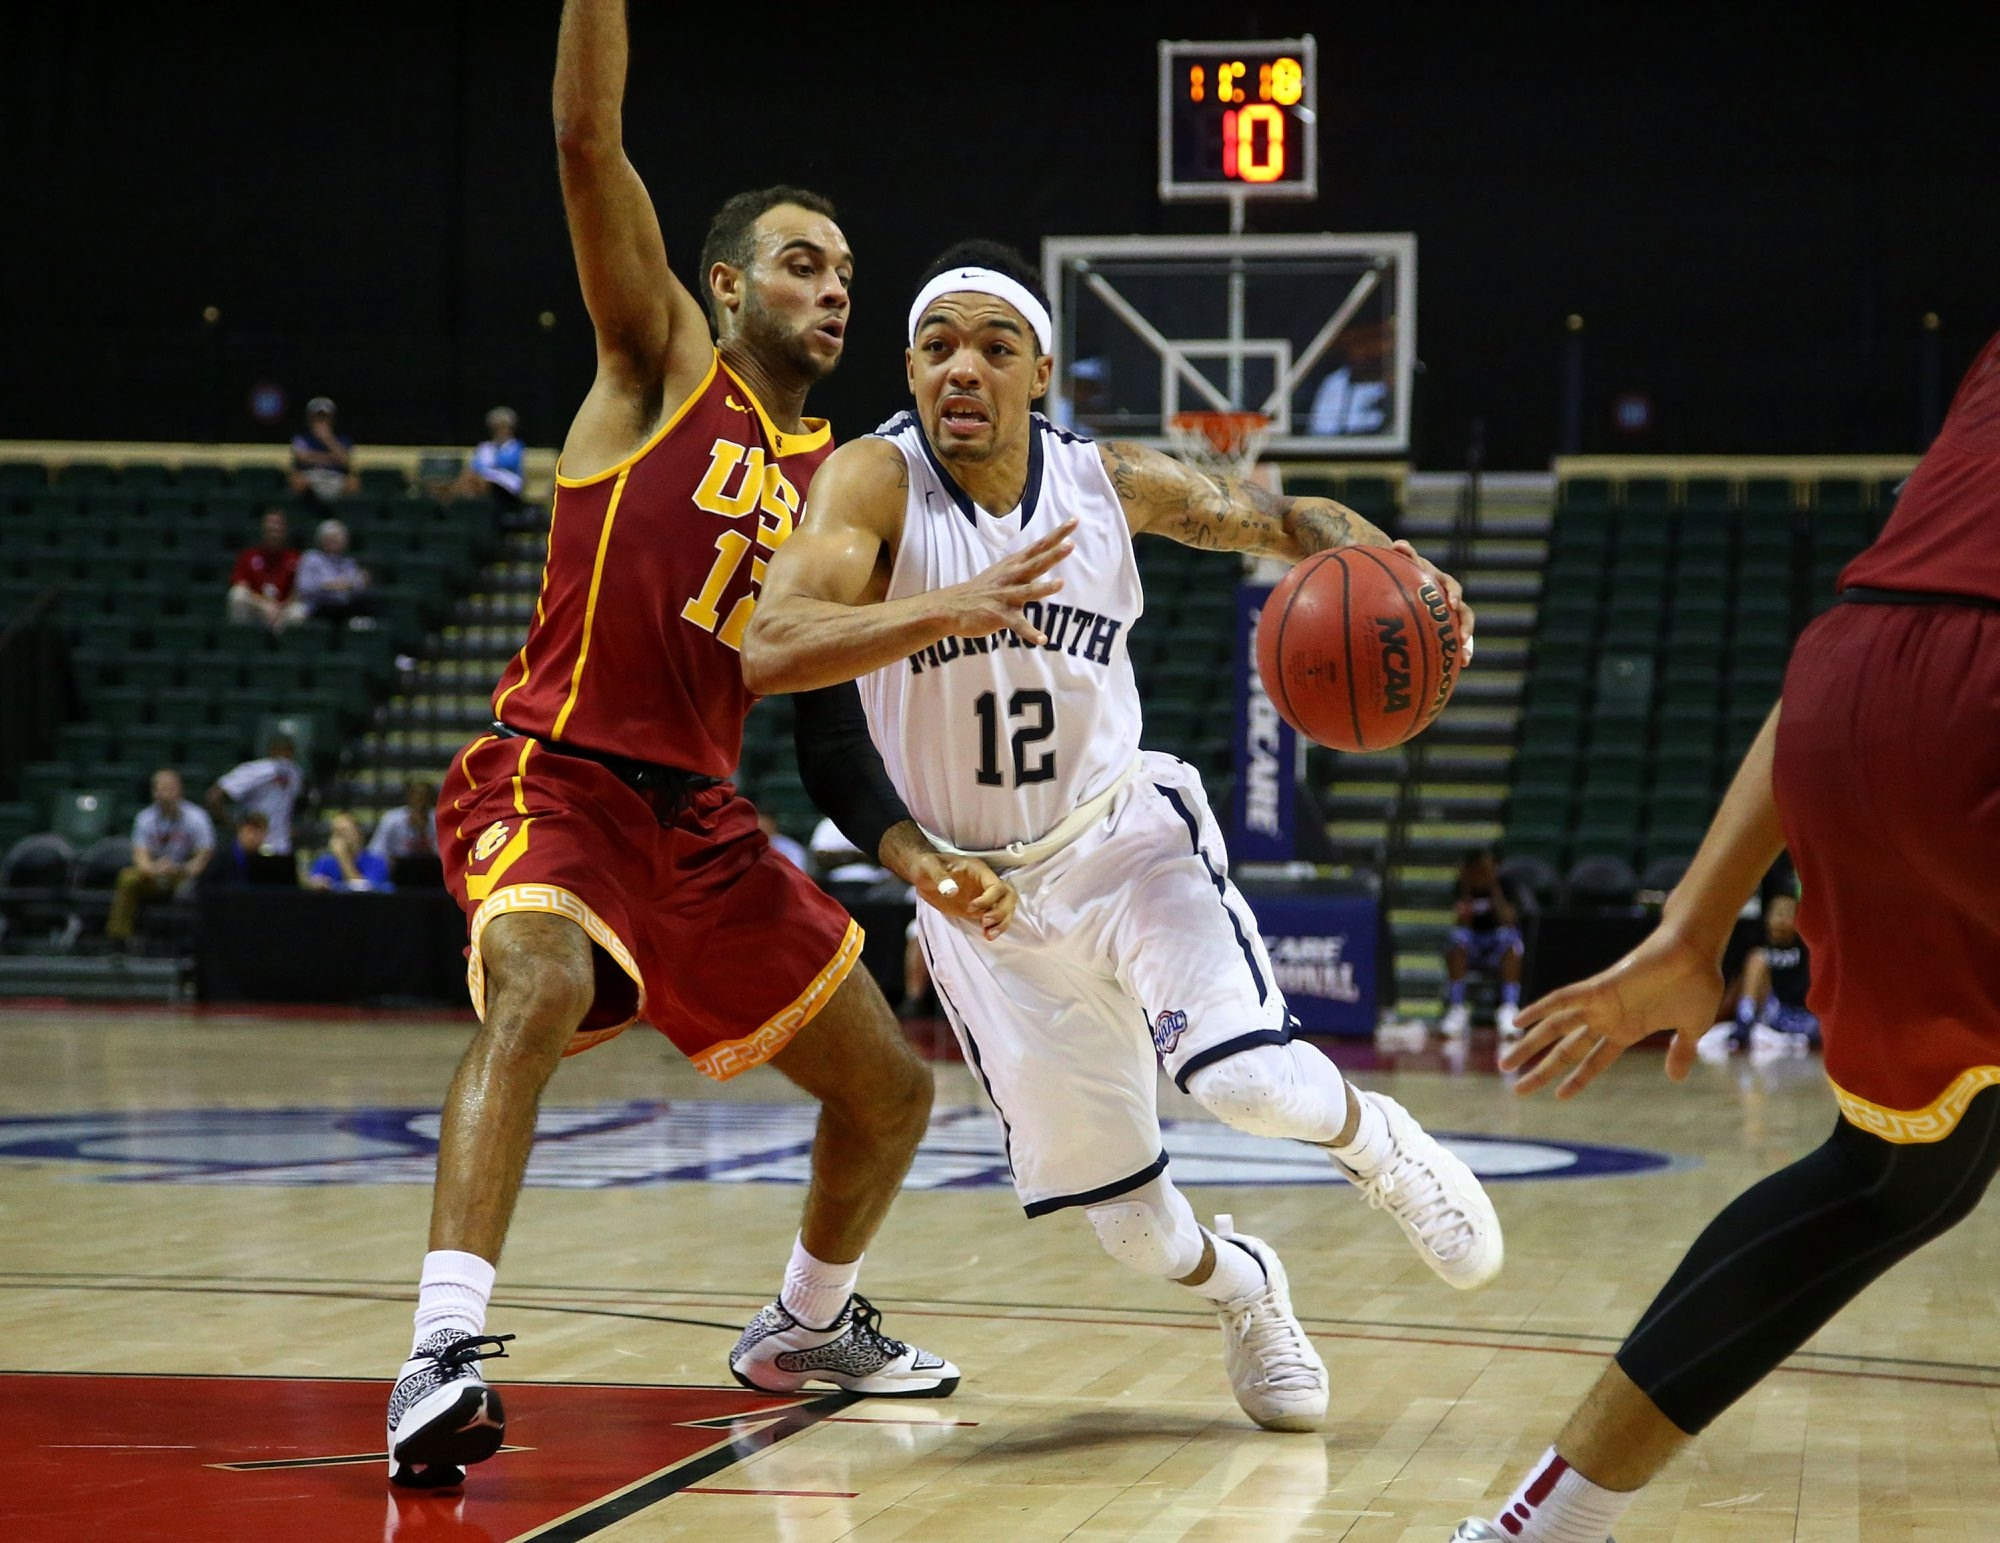 Justin Robinson of Monmouth is one of the top guards in the Metro Atlantic Athletic Conference, helping the Hawks to play an up-tempo game.